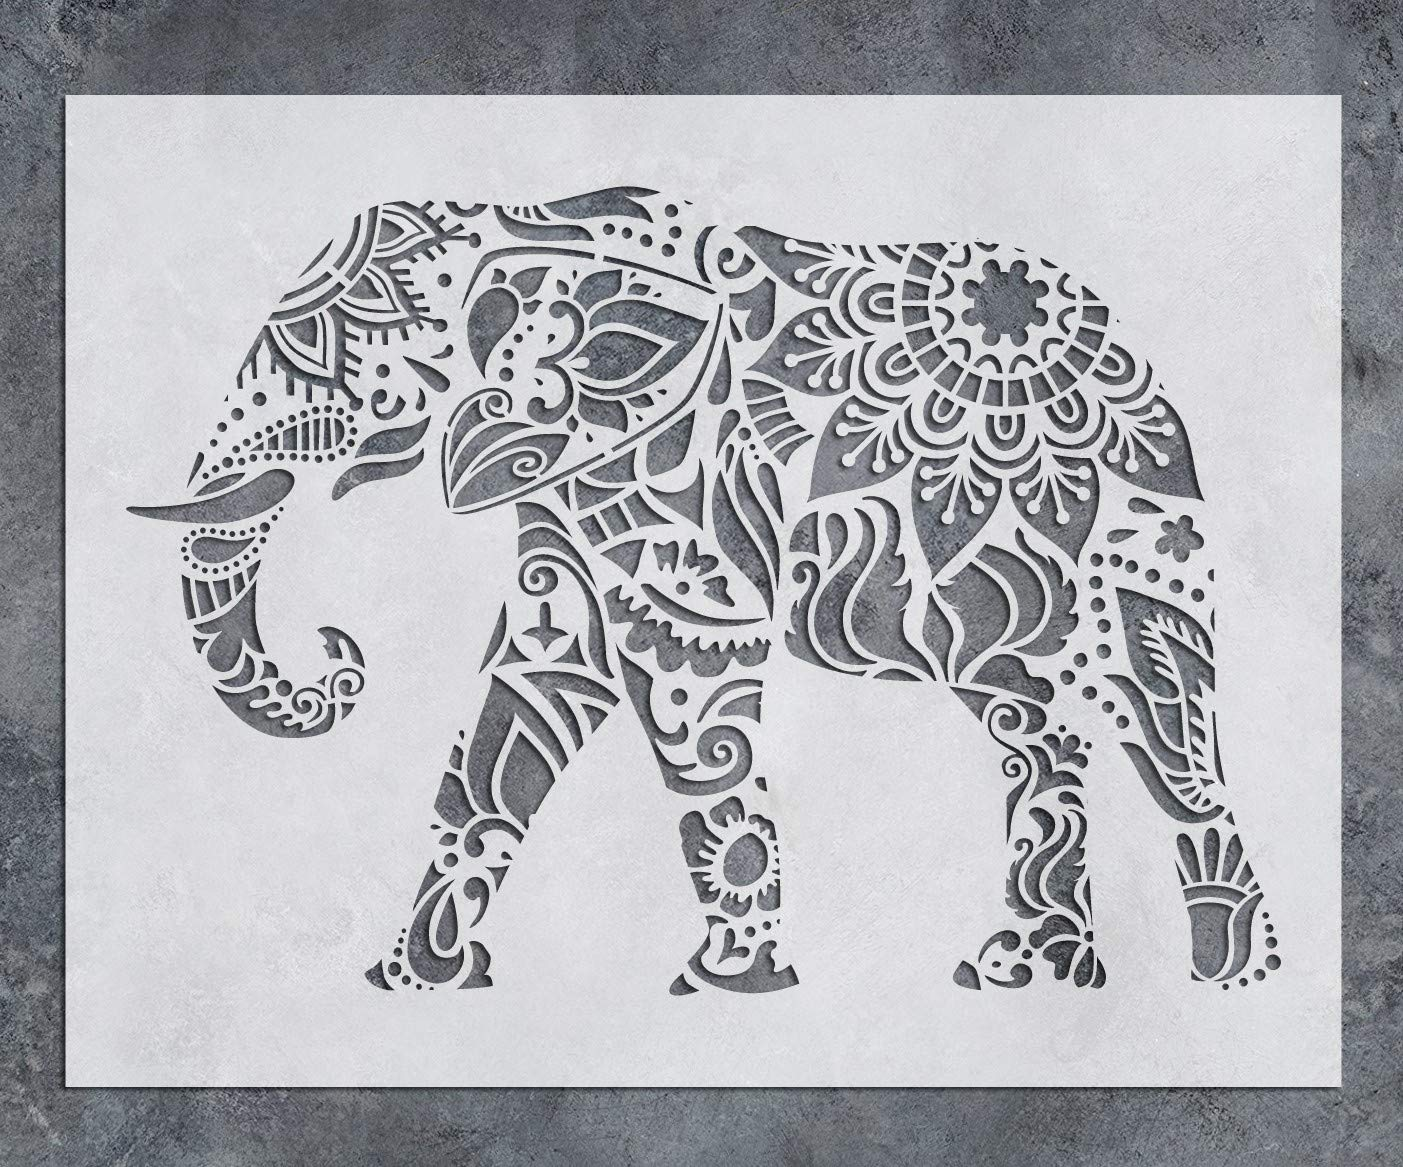 GSS Designs Elephant Wall Decor Stencil - Mandala Elephant Stencil (12x16 Inch) Laser Cut Painting Stencil - Floor Wall Tile Fabric Wood Stencils -Reusable Template for Wall Decals Transfer(SL-021) by G GSS Designs